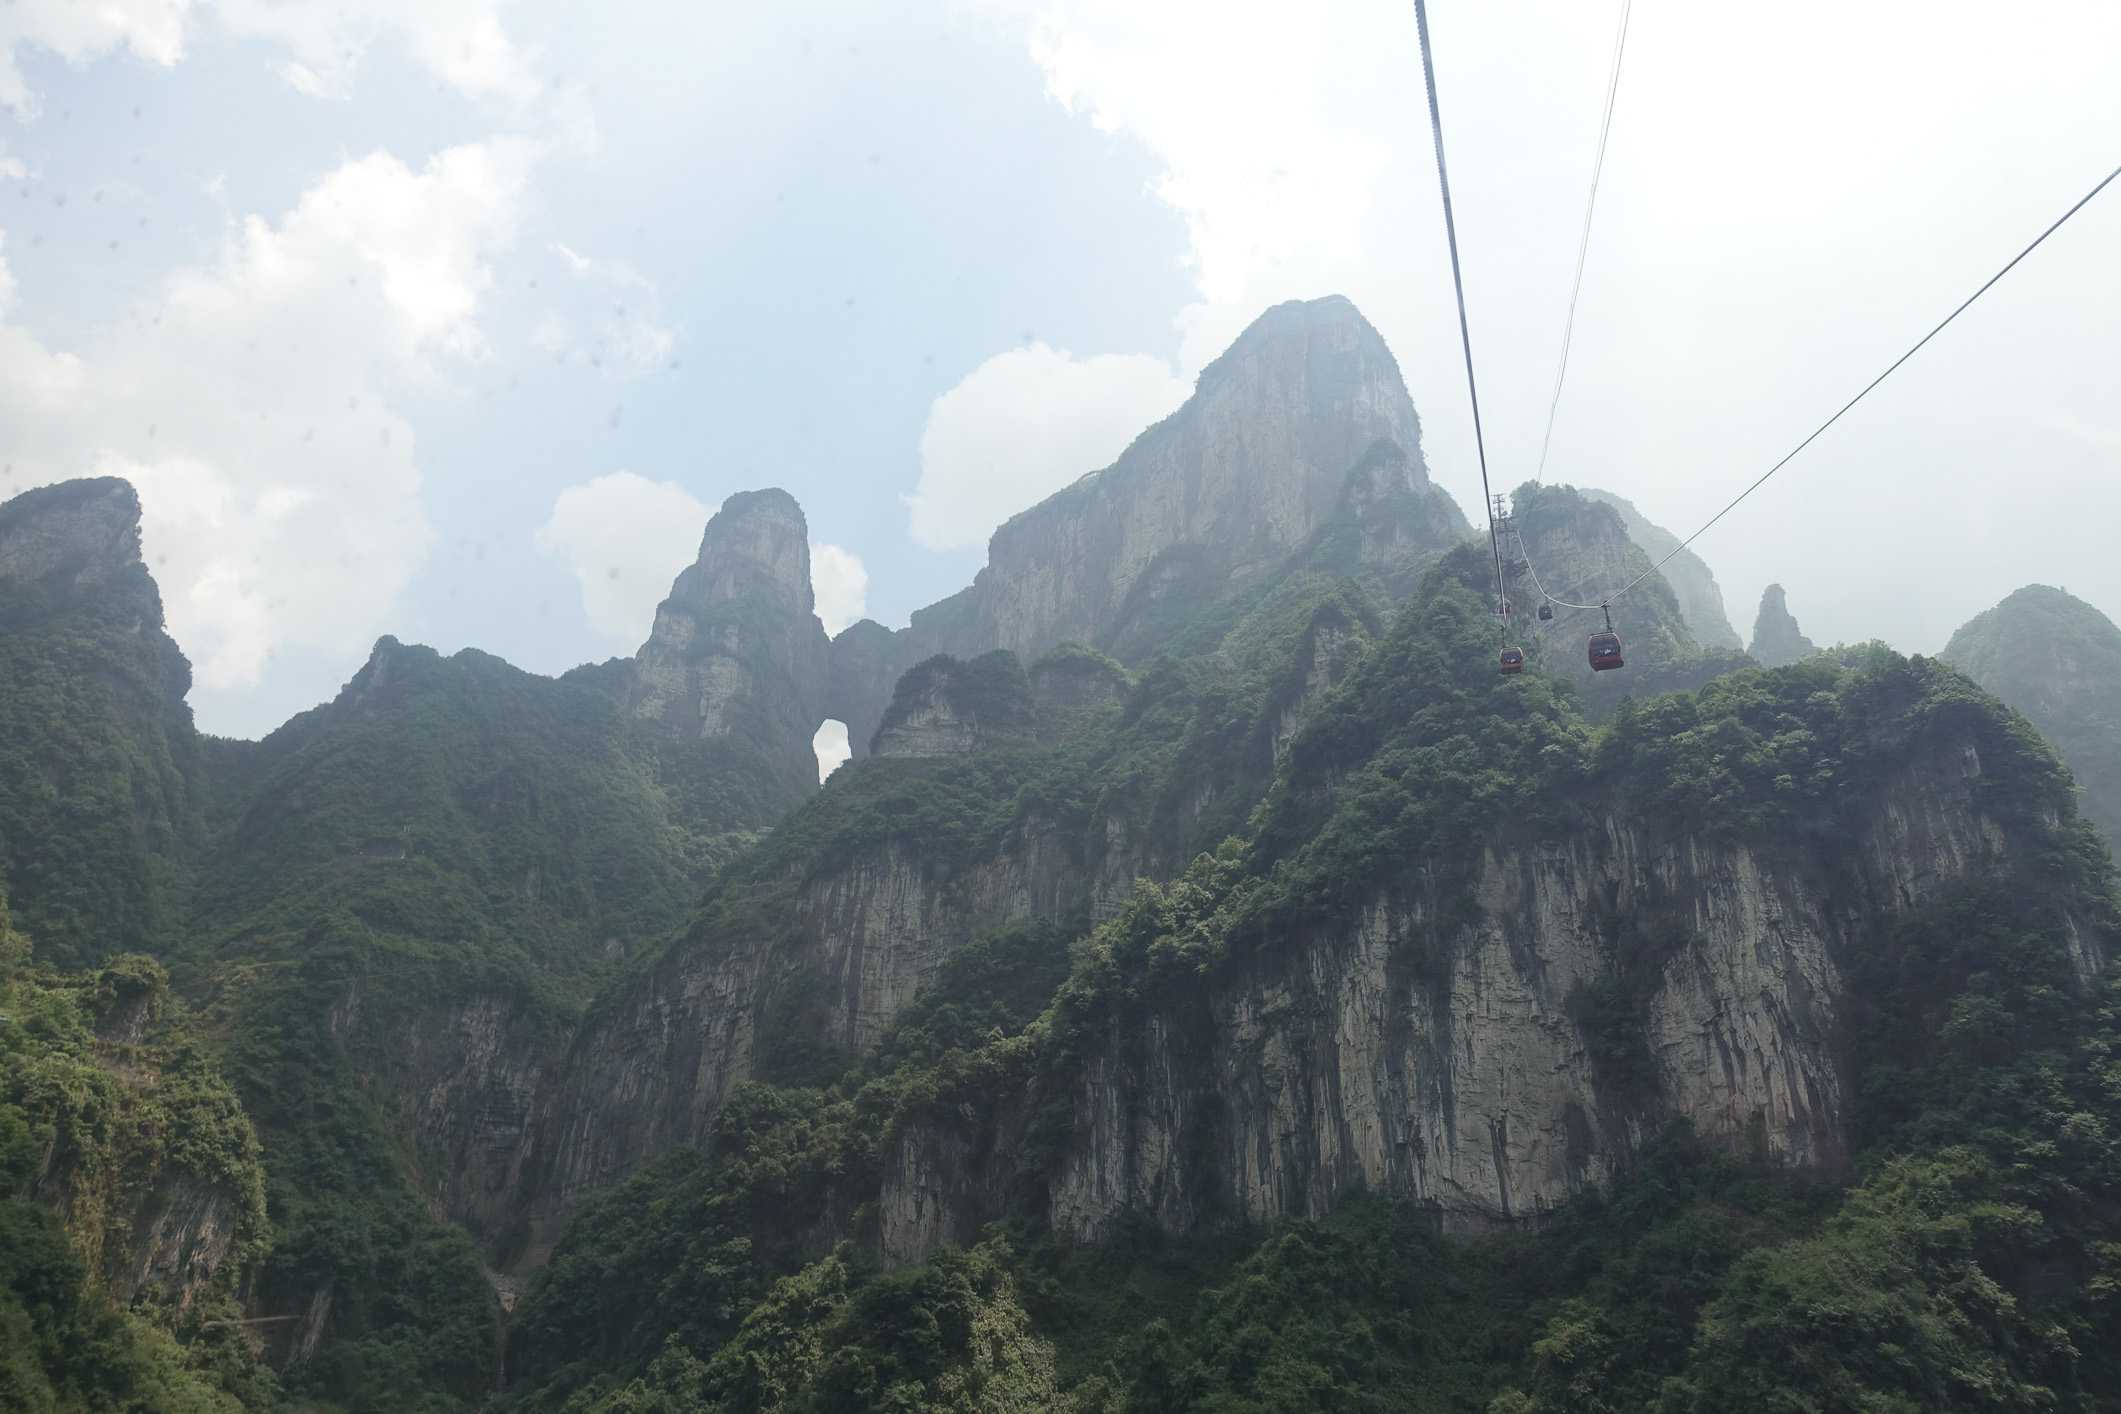 Cable car up to Tianmen Mountain